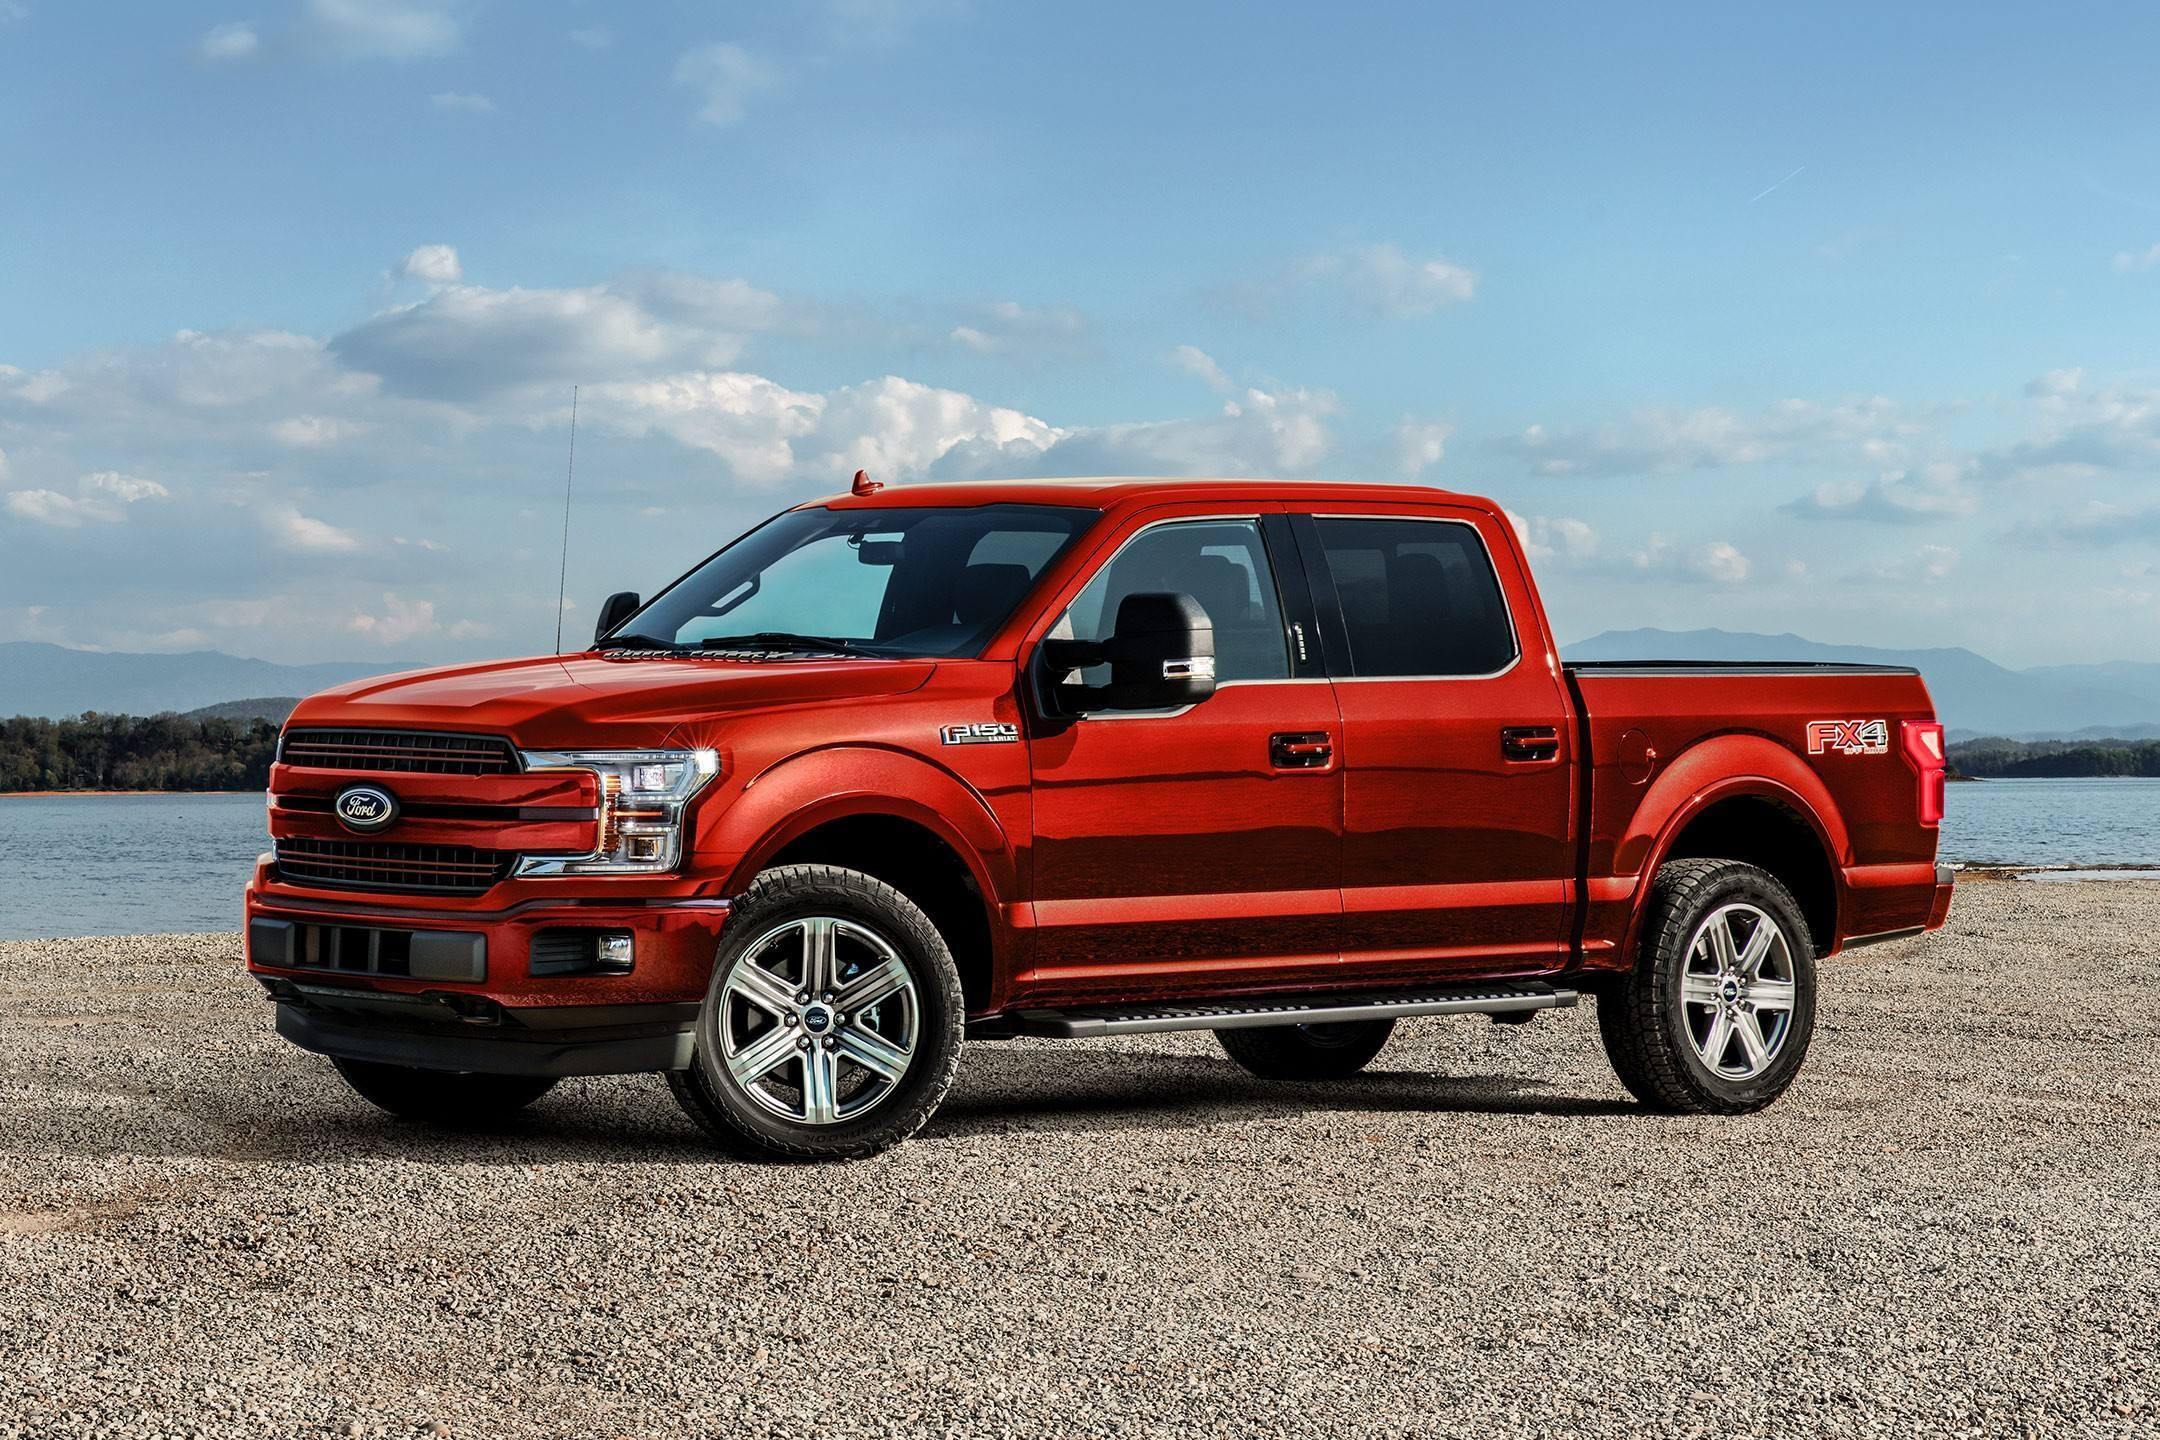 New F-150 Trucks in St. John's, Newfoundland and Labrador (NL)